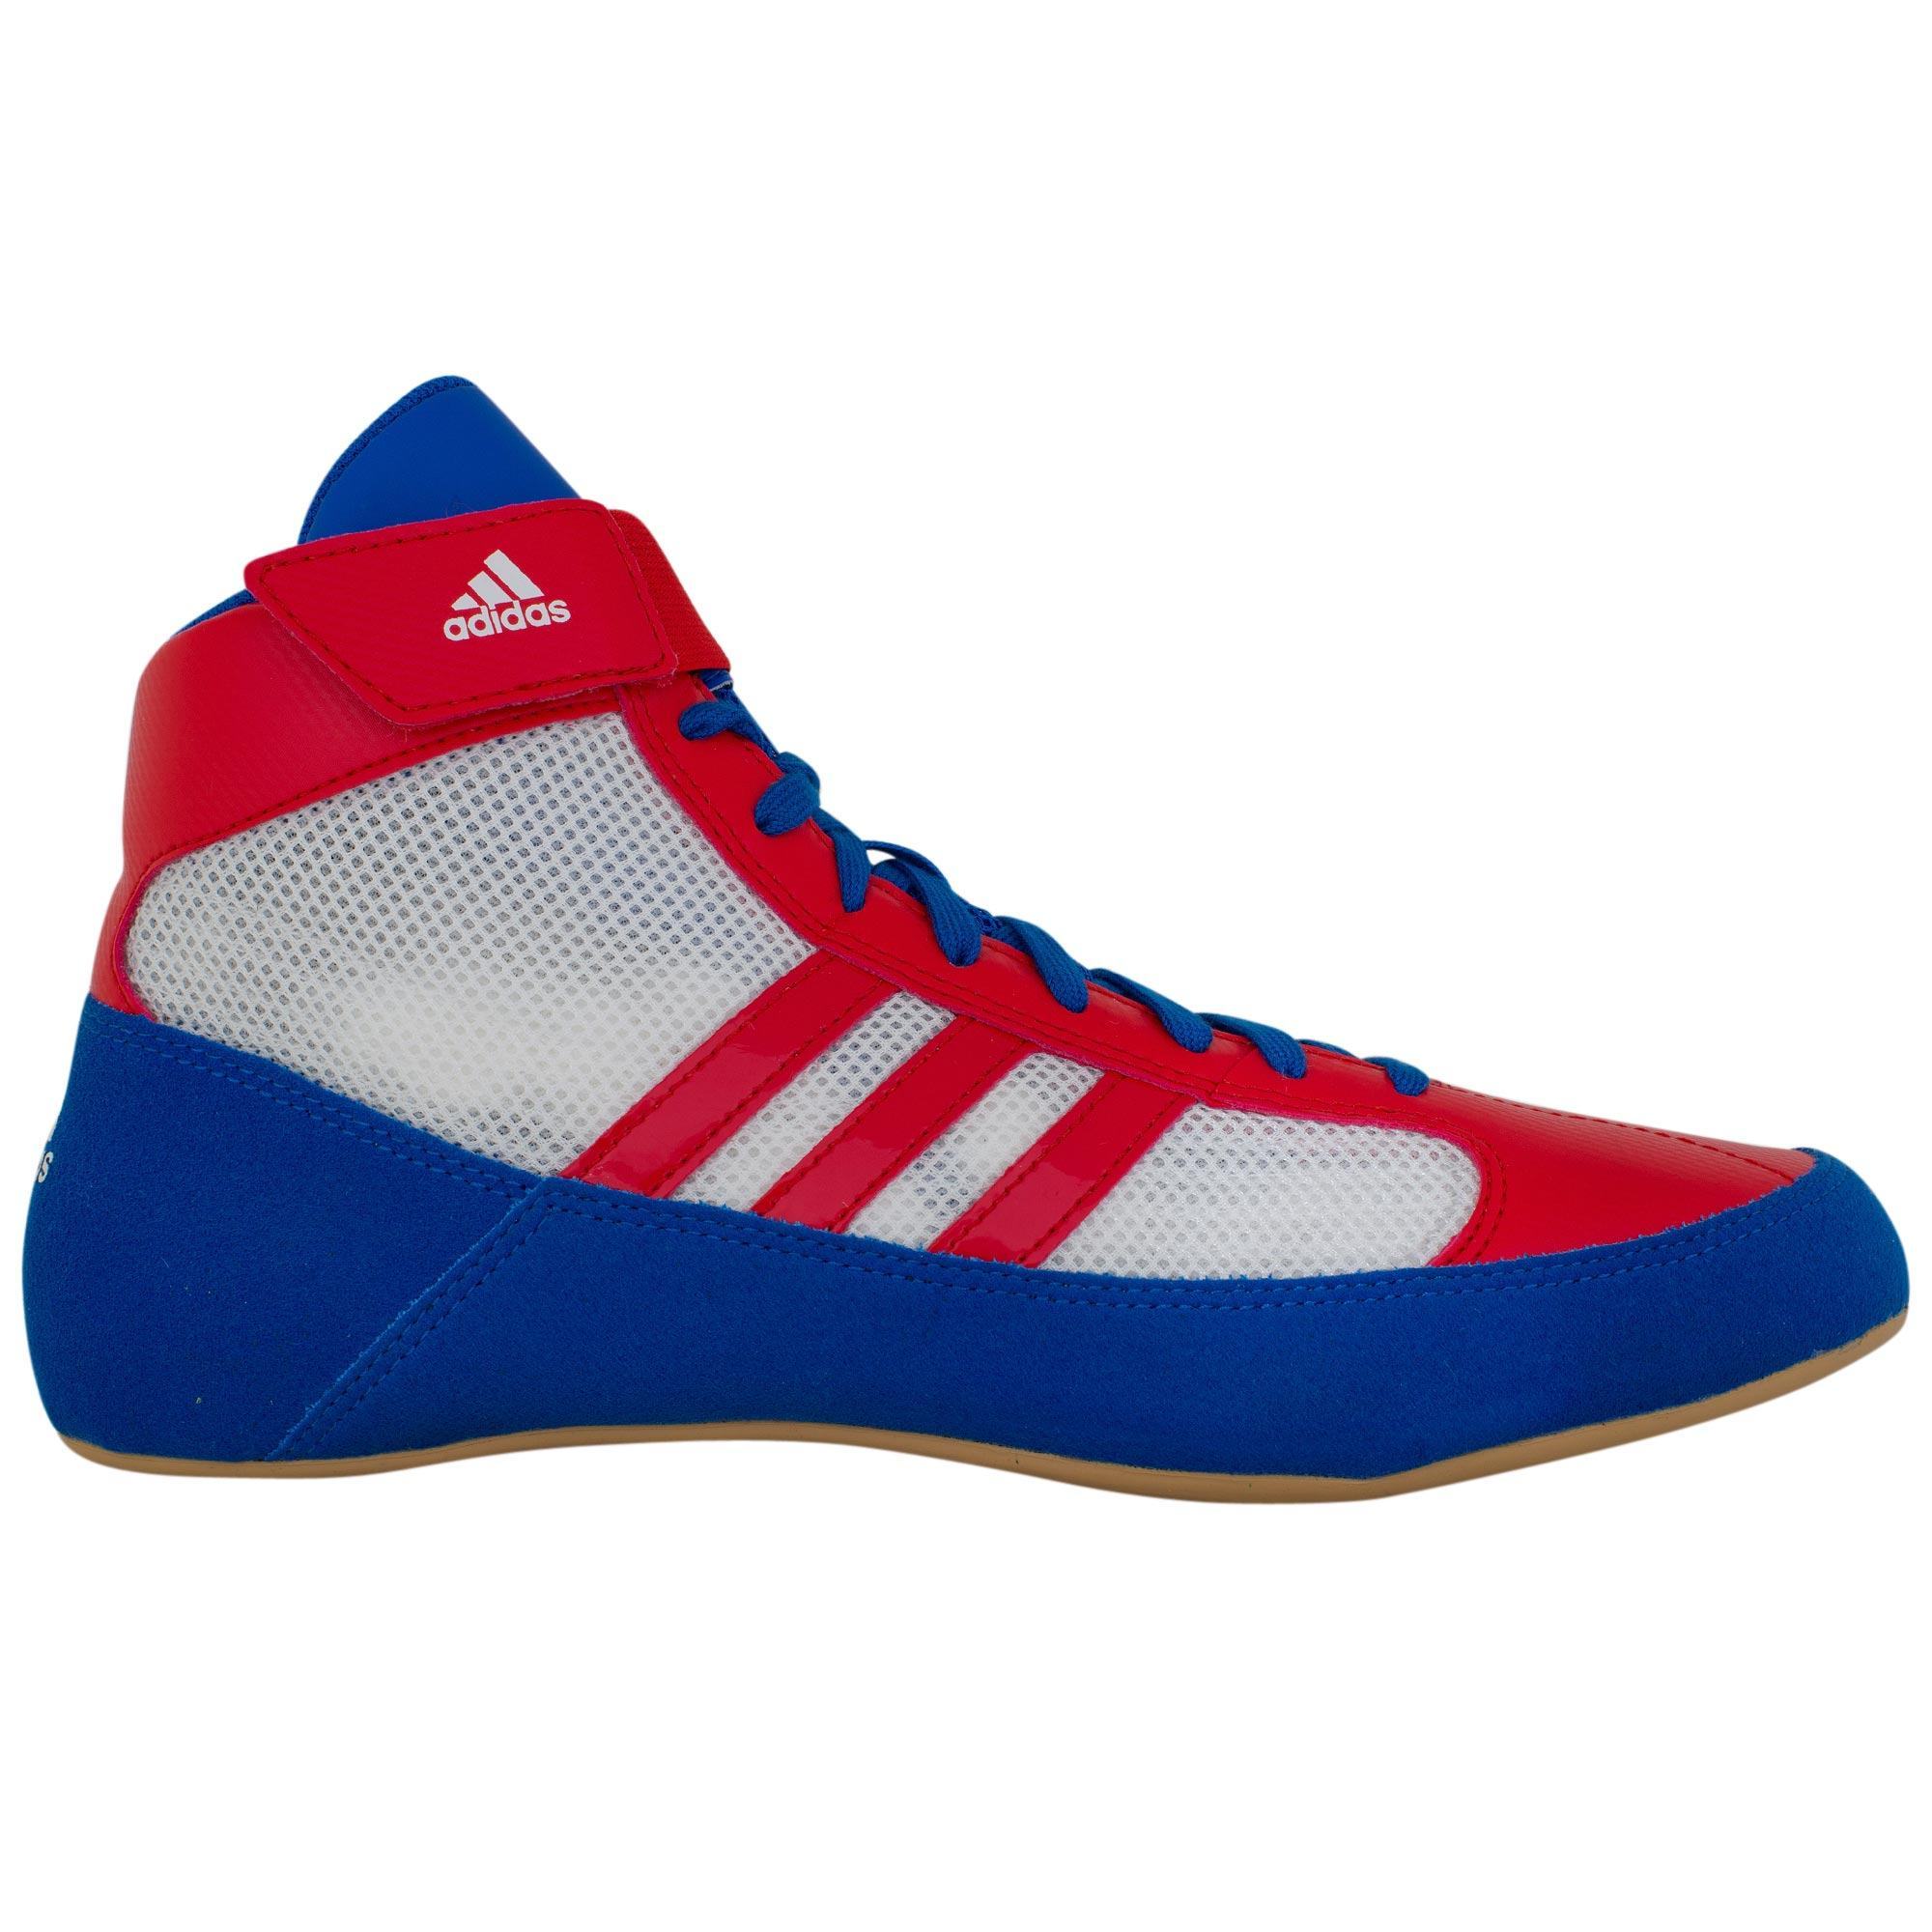 4f4d0237 Adidas HVC Youth Laces Shoes | WrestlingMart | Free Shipping